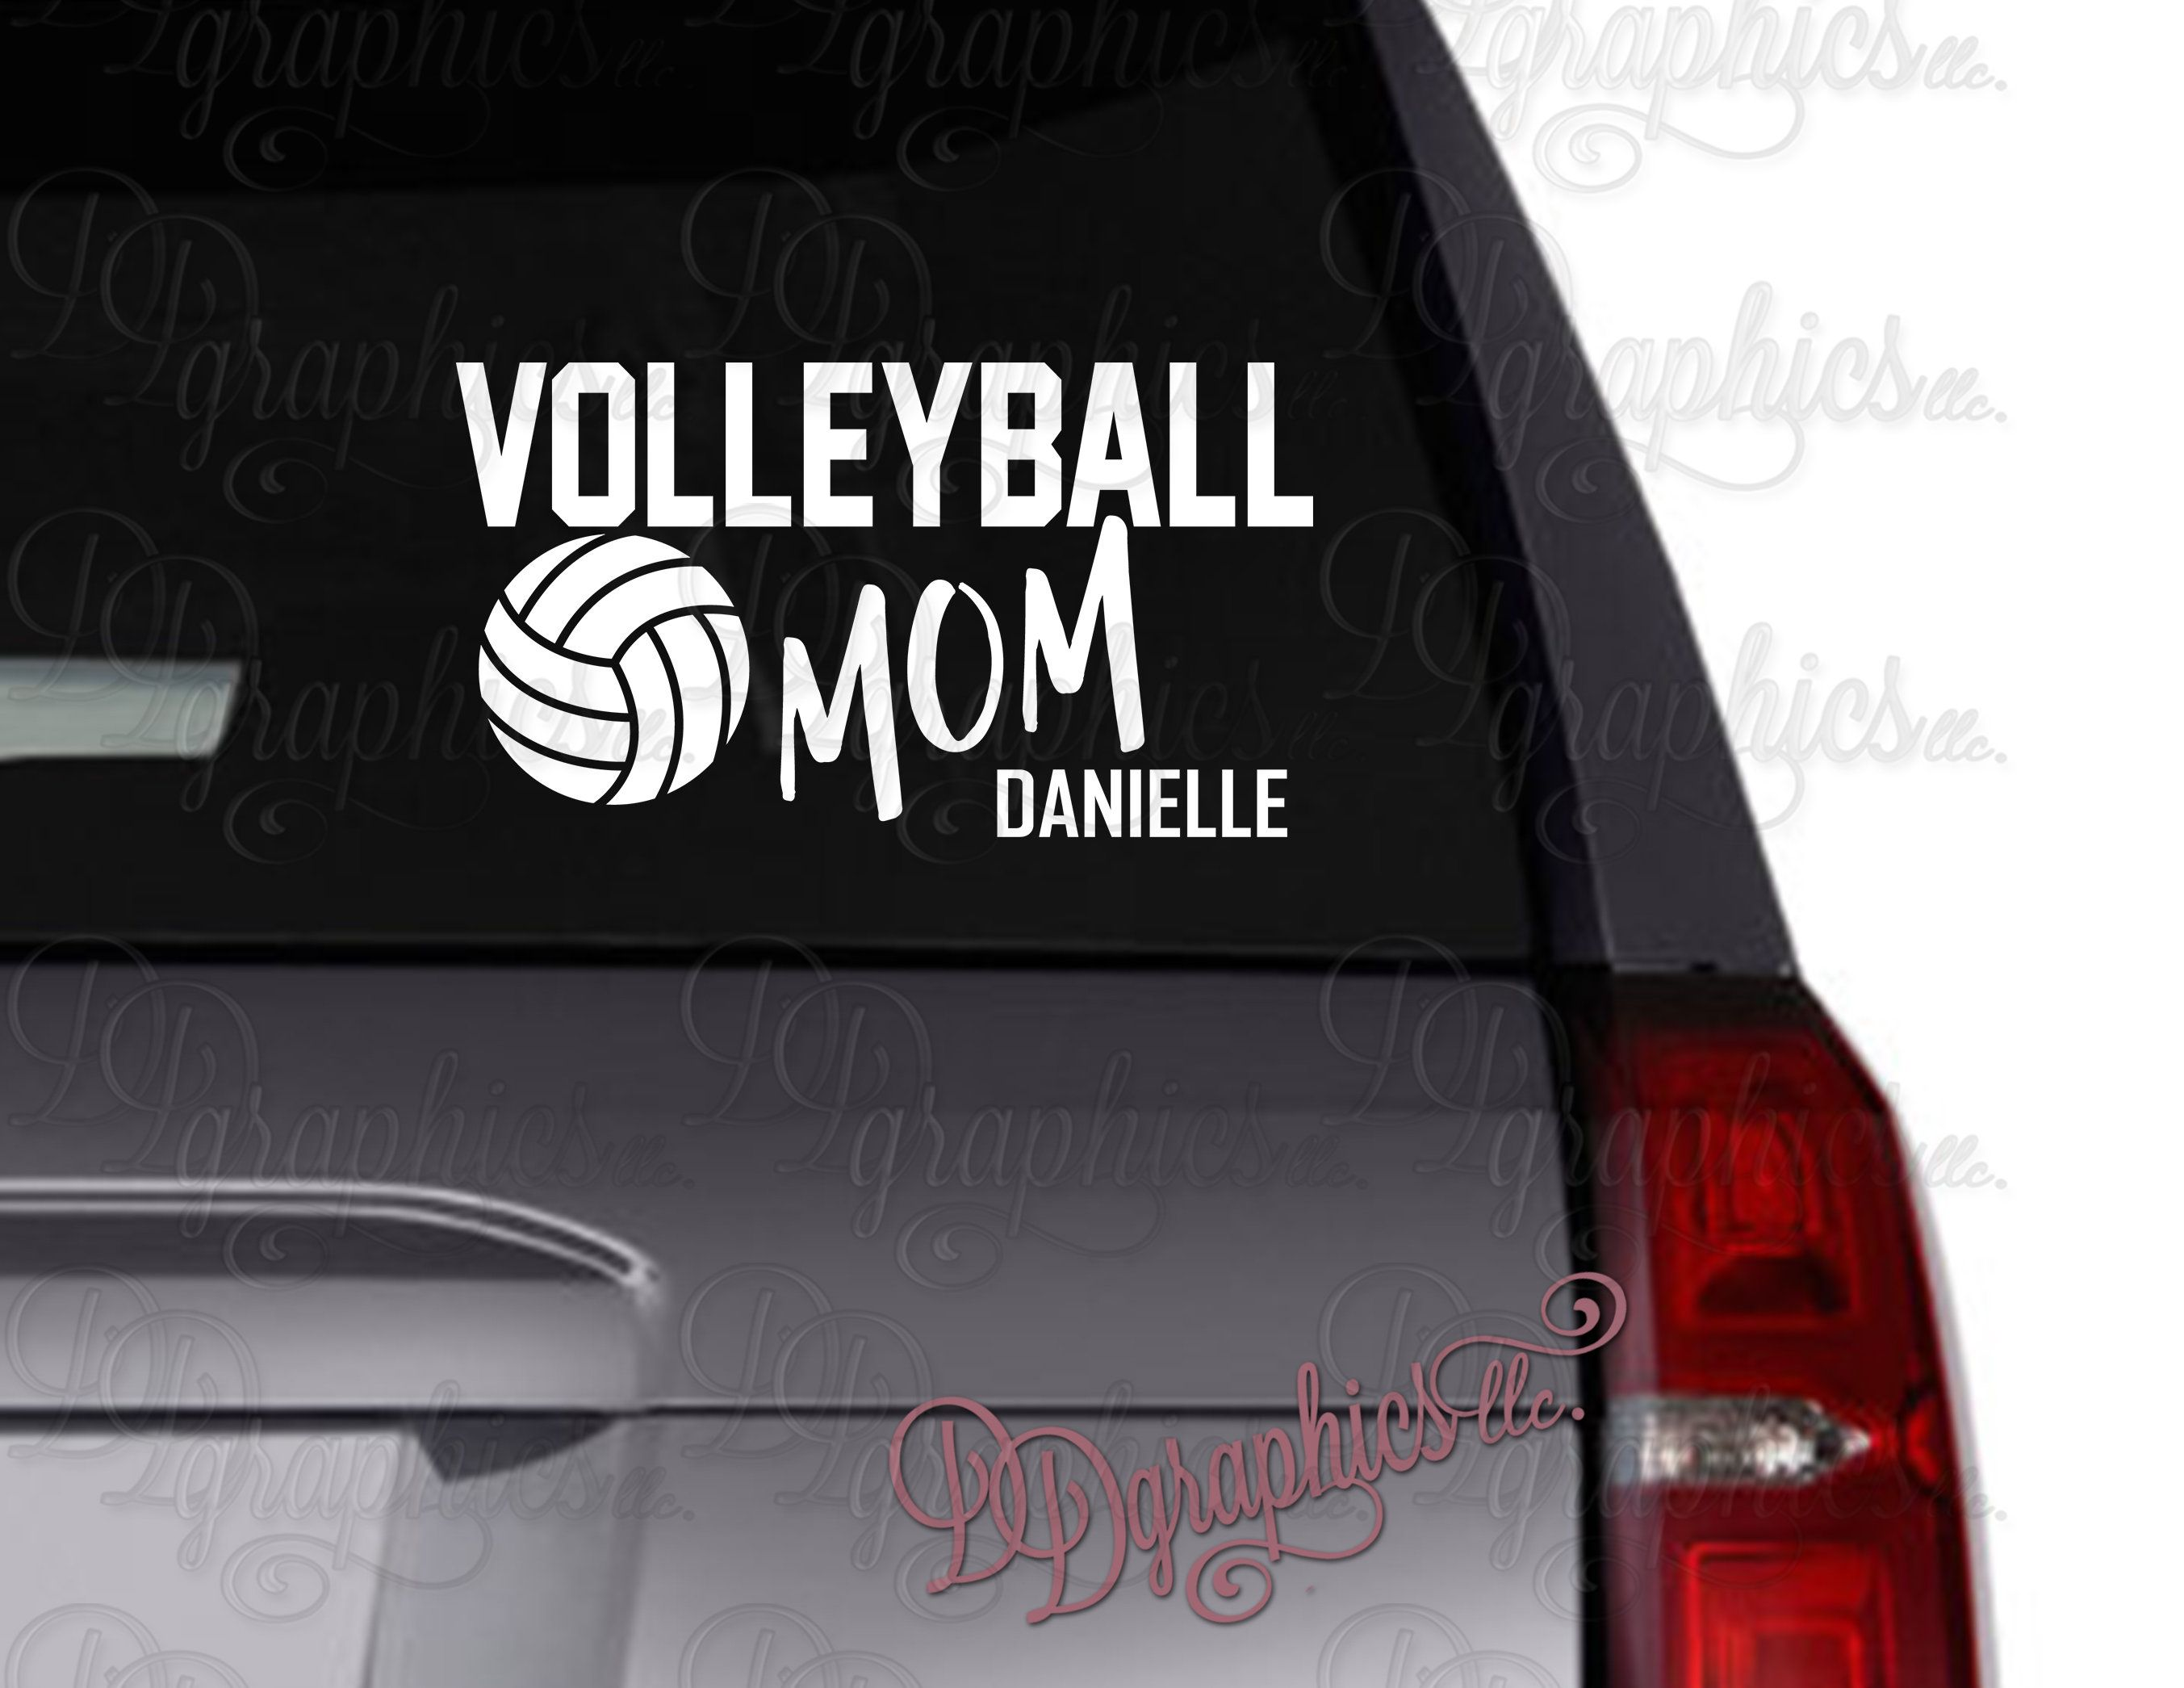 Volleyball Mom Vinyl Decal Volleyball Decal Volleyball Mom Etsy Volleyball Mom Vinyl Personalized Sports Vinyl Decals [ 2091 x 2706 Pixel ]